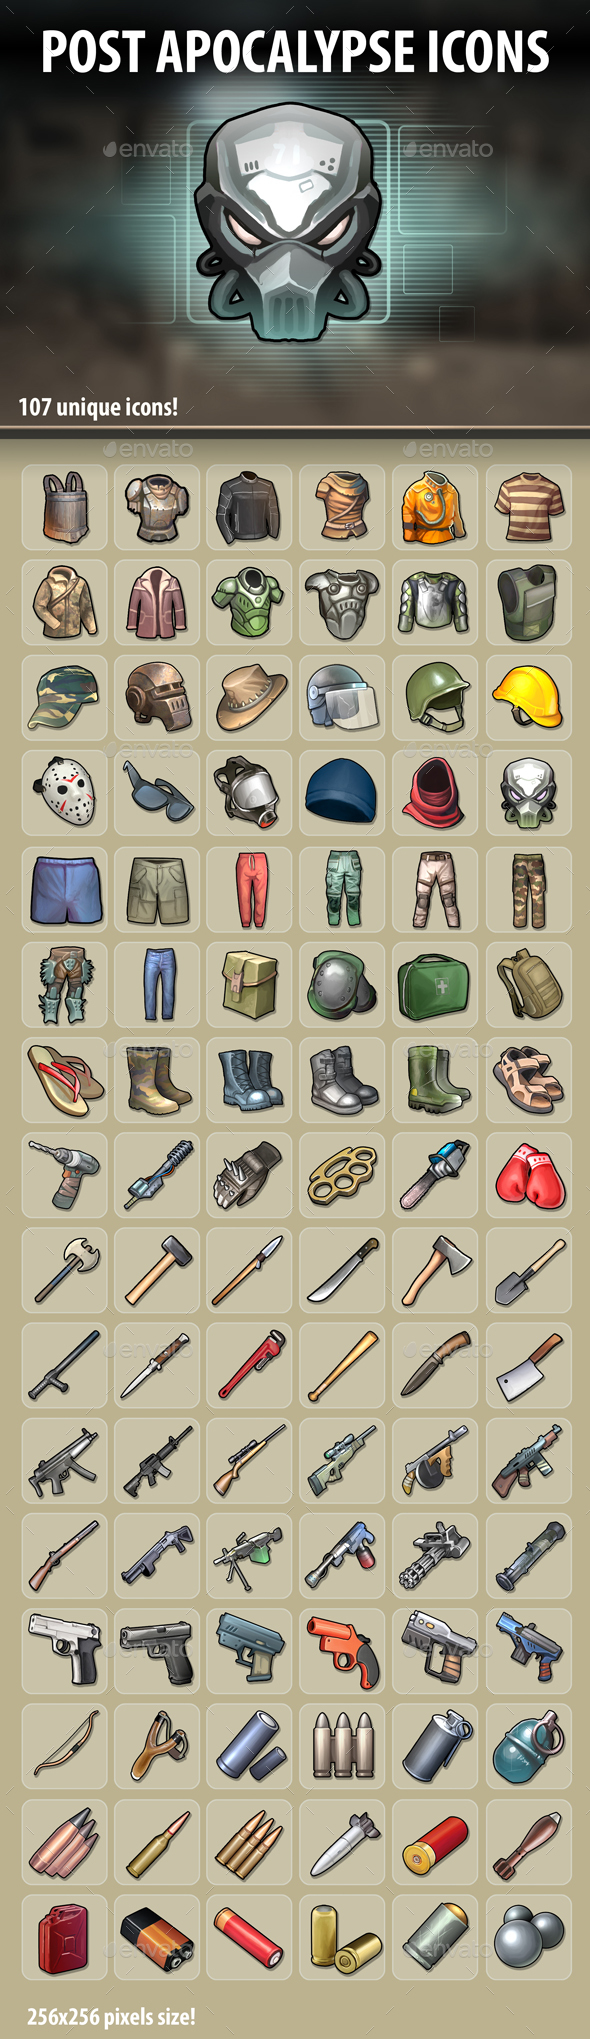 Post Apocalypse Icons - Miscellaneous Game Assets